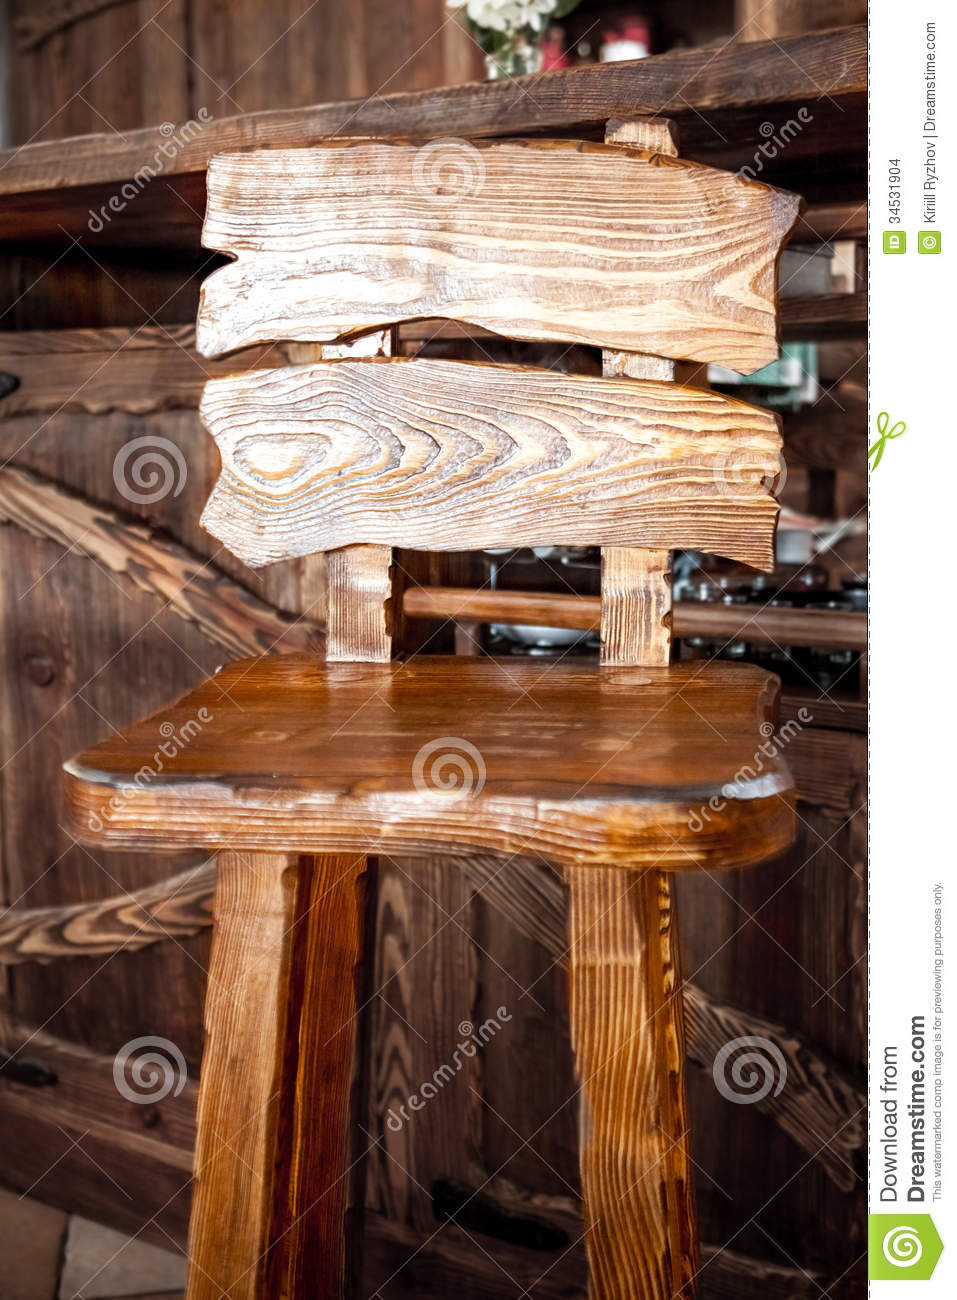 Wooden Bar Chair In Country Style Stock Images - Image ...